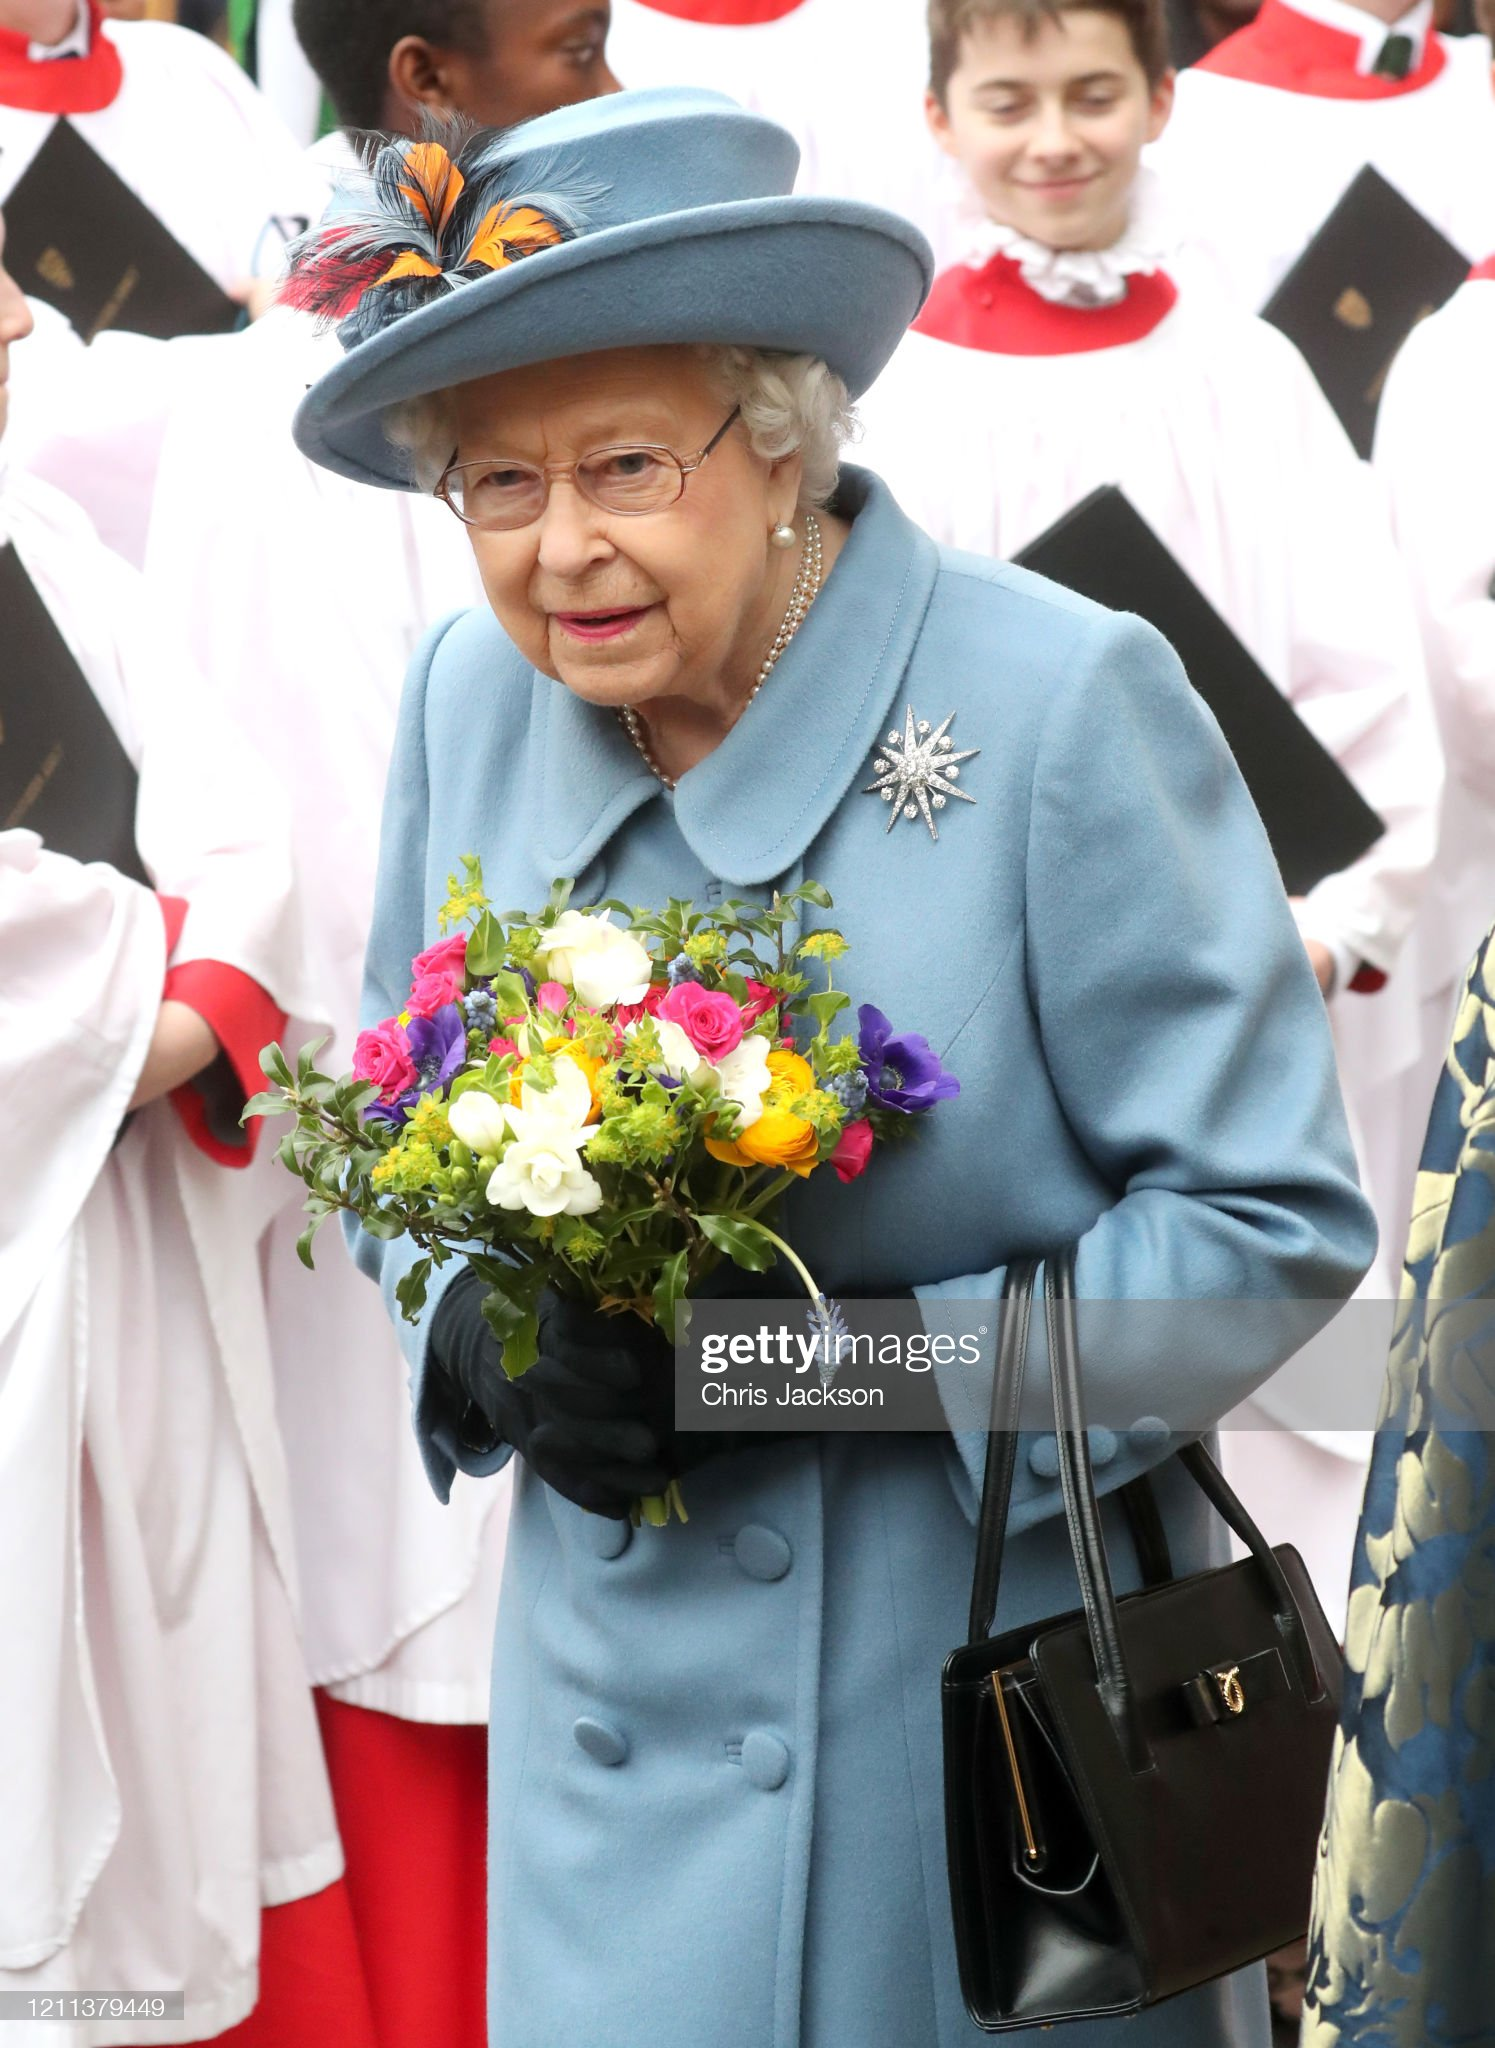 https://media.gettyimages.com/photos/queen-elizabeth-ii-departs-the-commonwealth-day-service-2020-at-on-picture-id1211379449?s=2048x2048